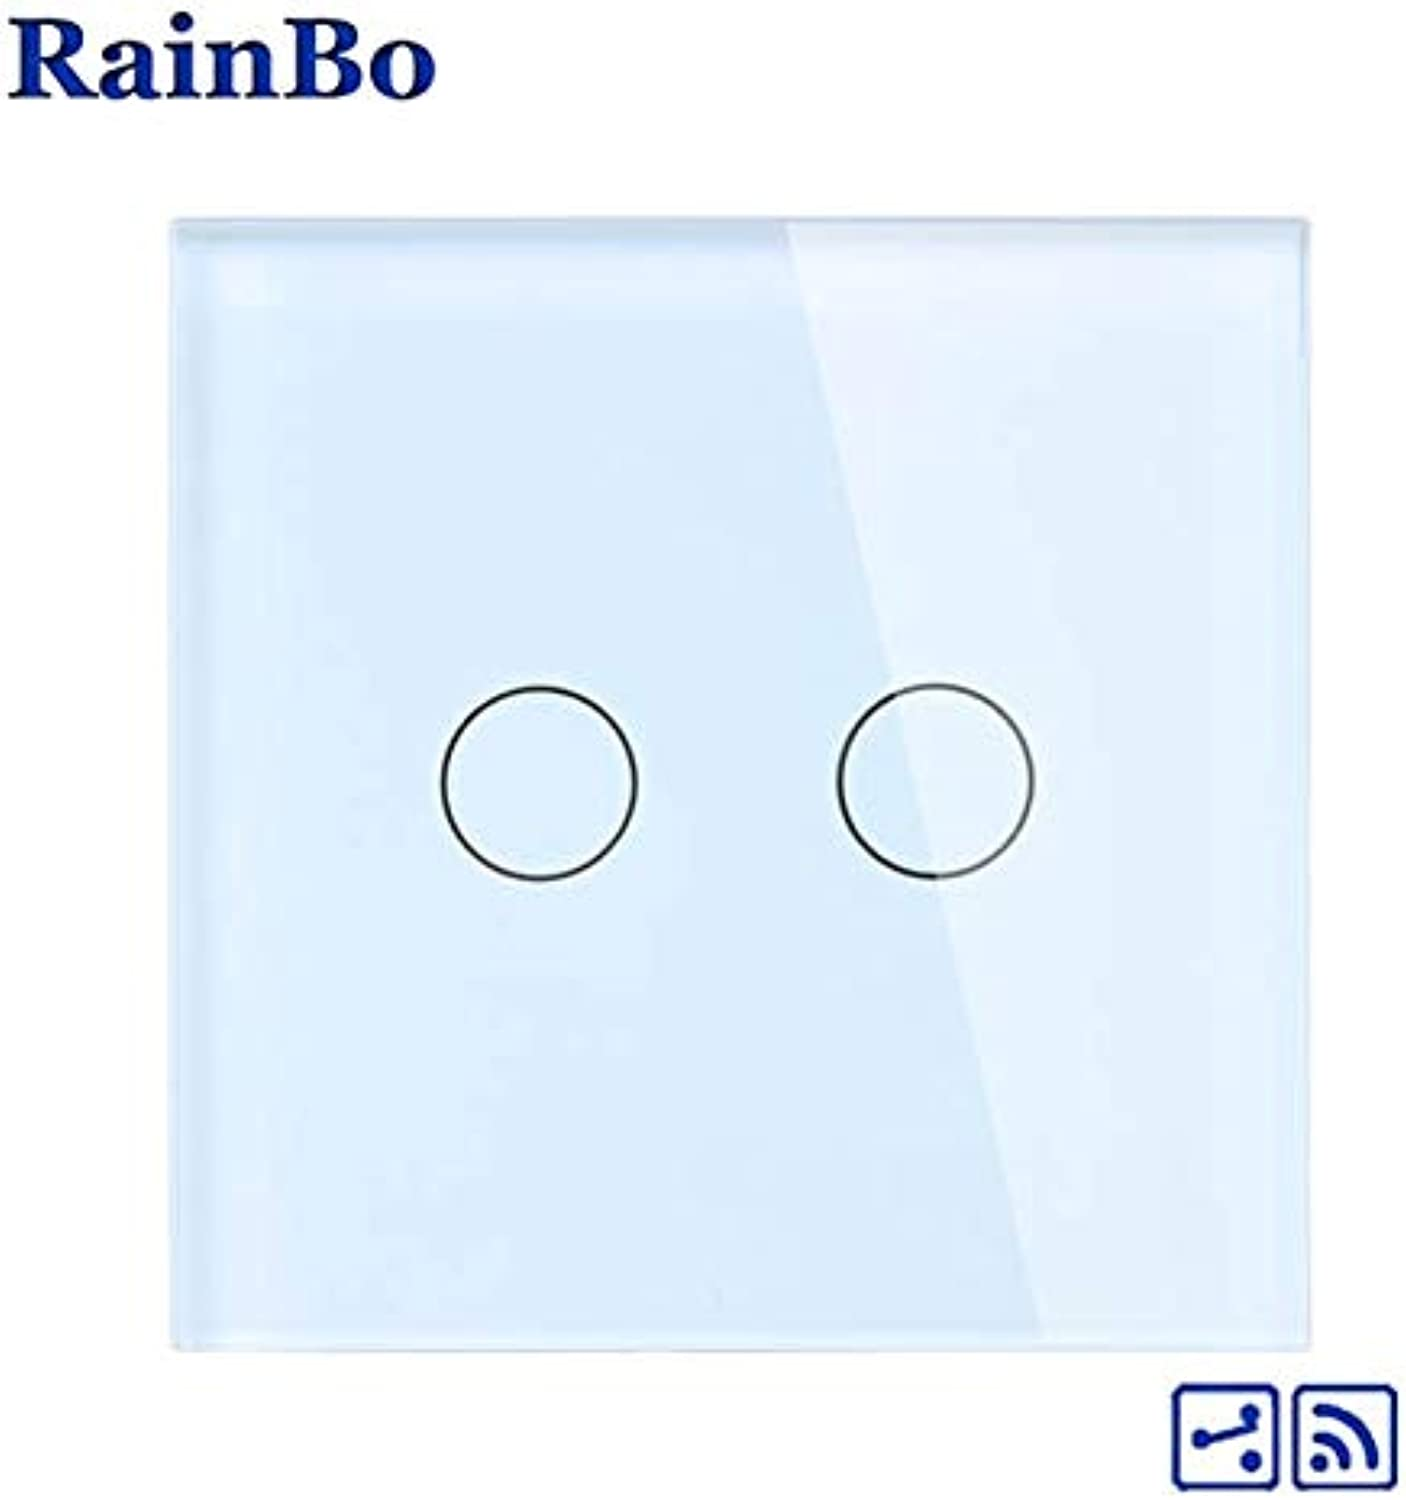 RainBo Wall Light Switch Remote Touch Switch Screen Crystal Glass Panel Wall Switch EU Remote 110250V 2gang2way A1924CW B  (color  White)